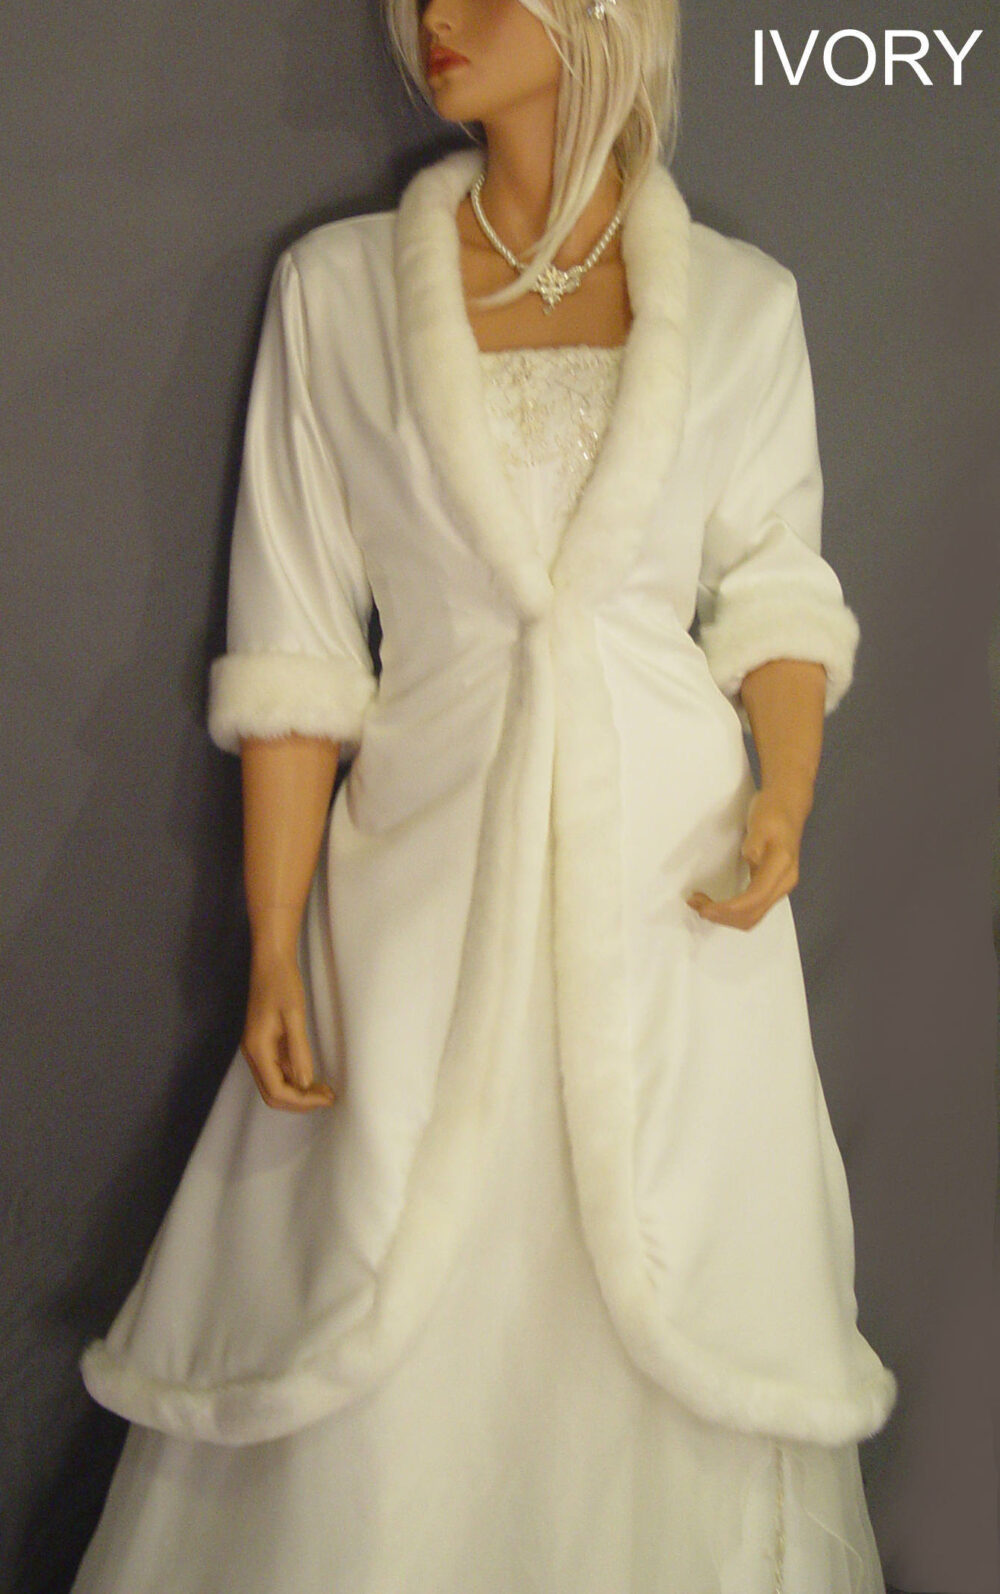 Mid Length Satin Bridal Coat Wedding Jacket With Faux Fur Trim & 3/4 Sleeves Winter Bride Cover Up Clk206 Avle in Ivory & 1 Other Color